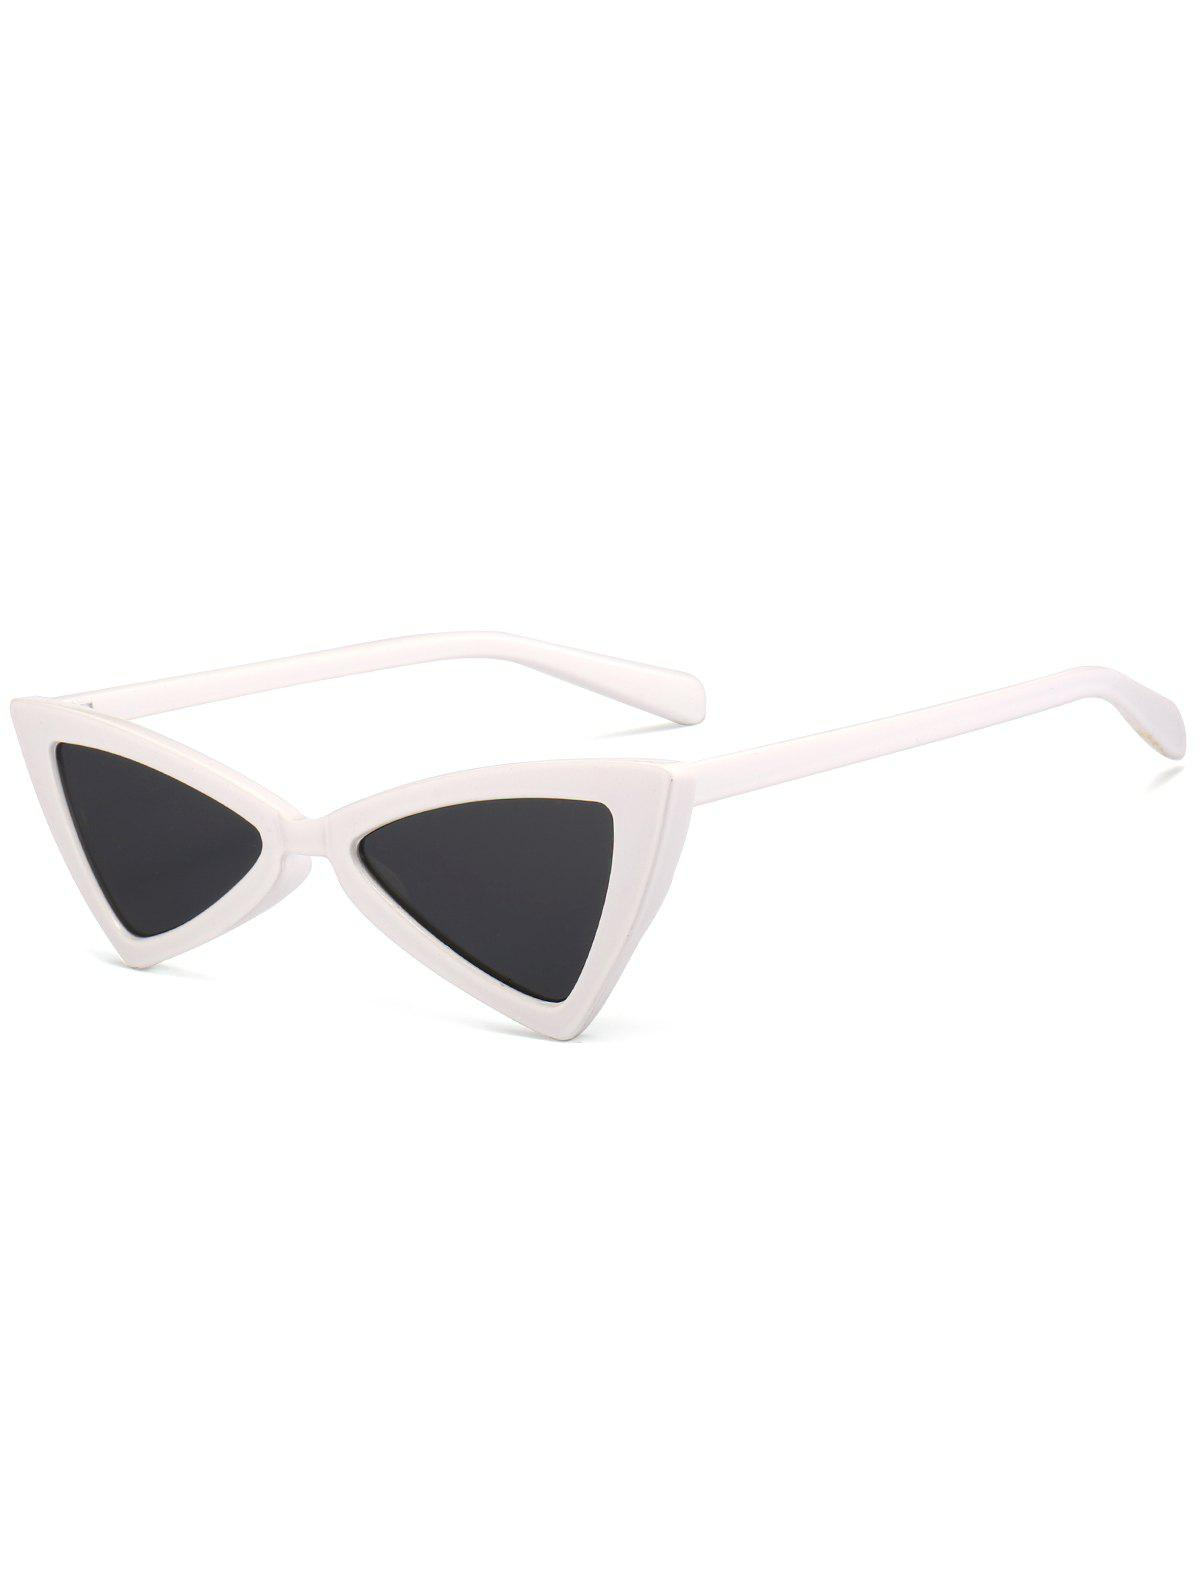 Irregular Butterfly Full Frame Embellished Sunglasses - WHITE